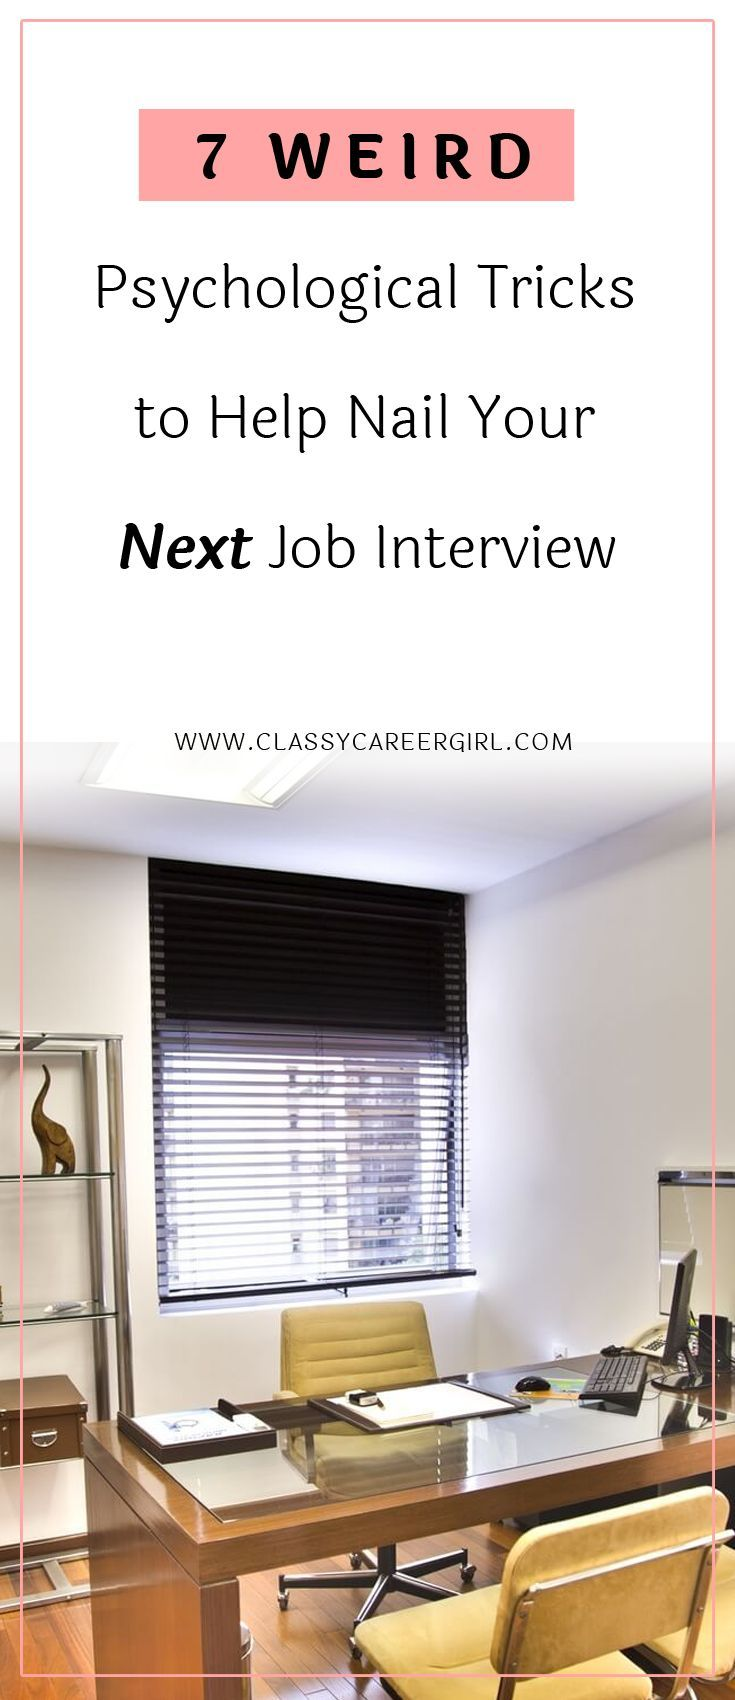 best ideas about job interviews job interview 7 weird psychological tricks to help nail your next job interview while meeting the job requirements